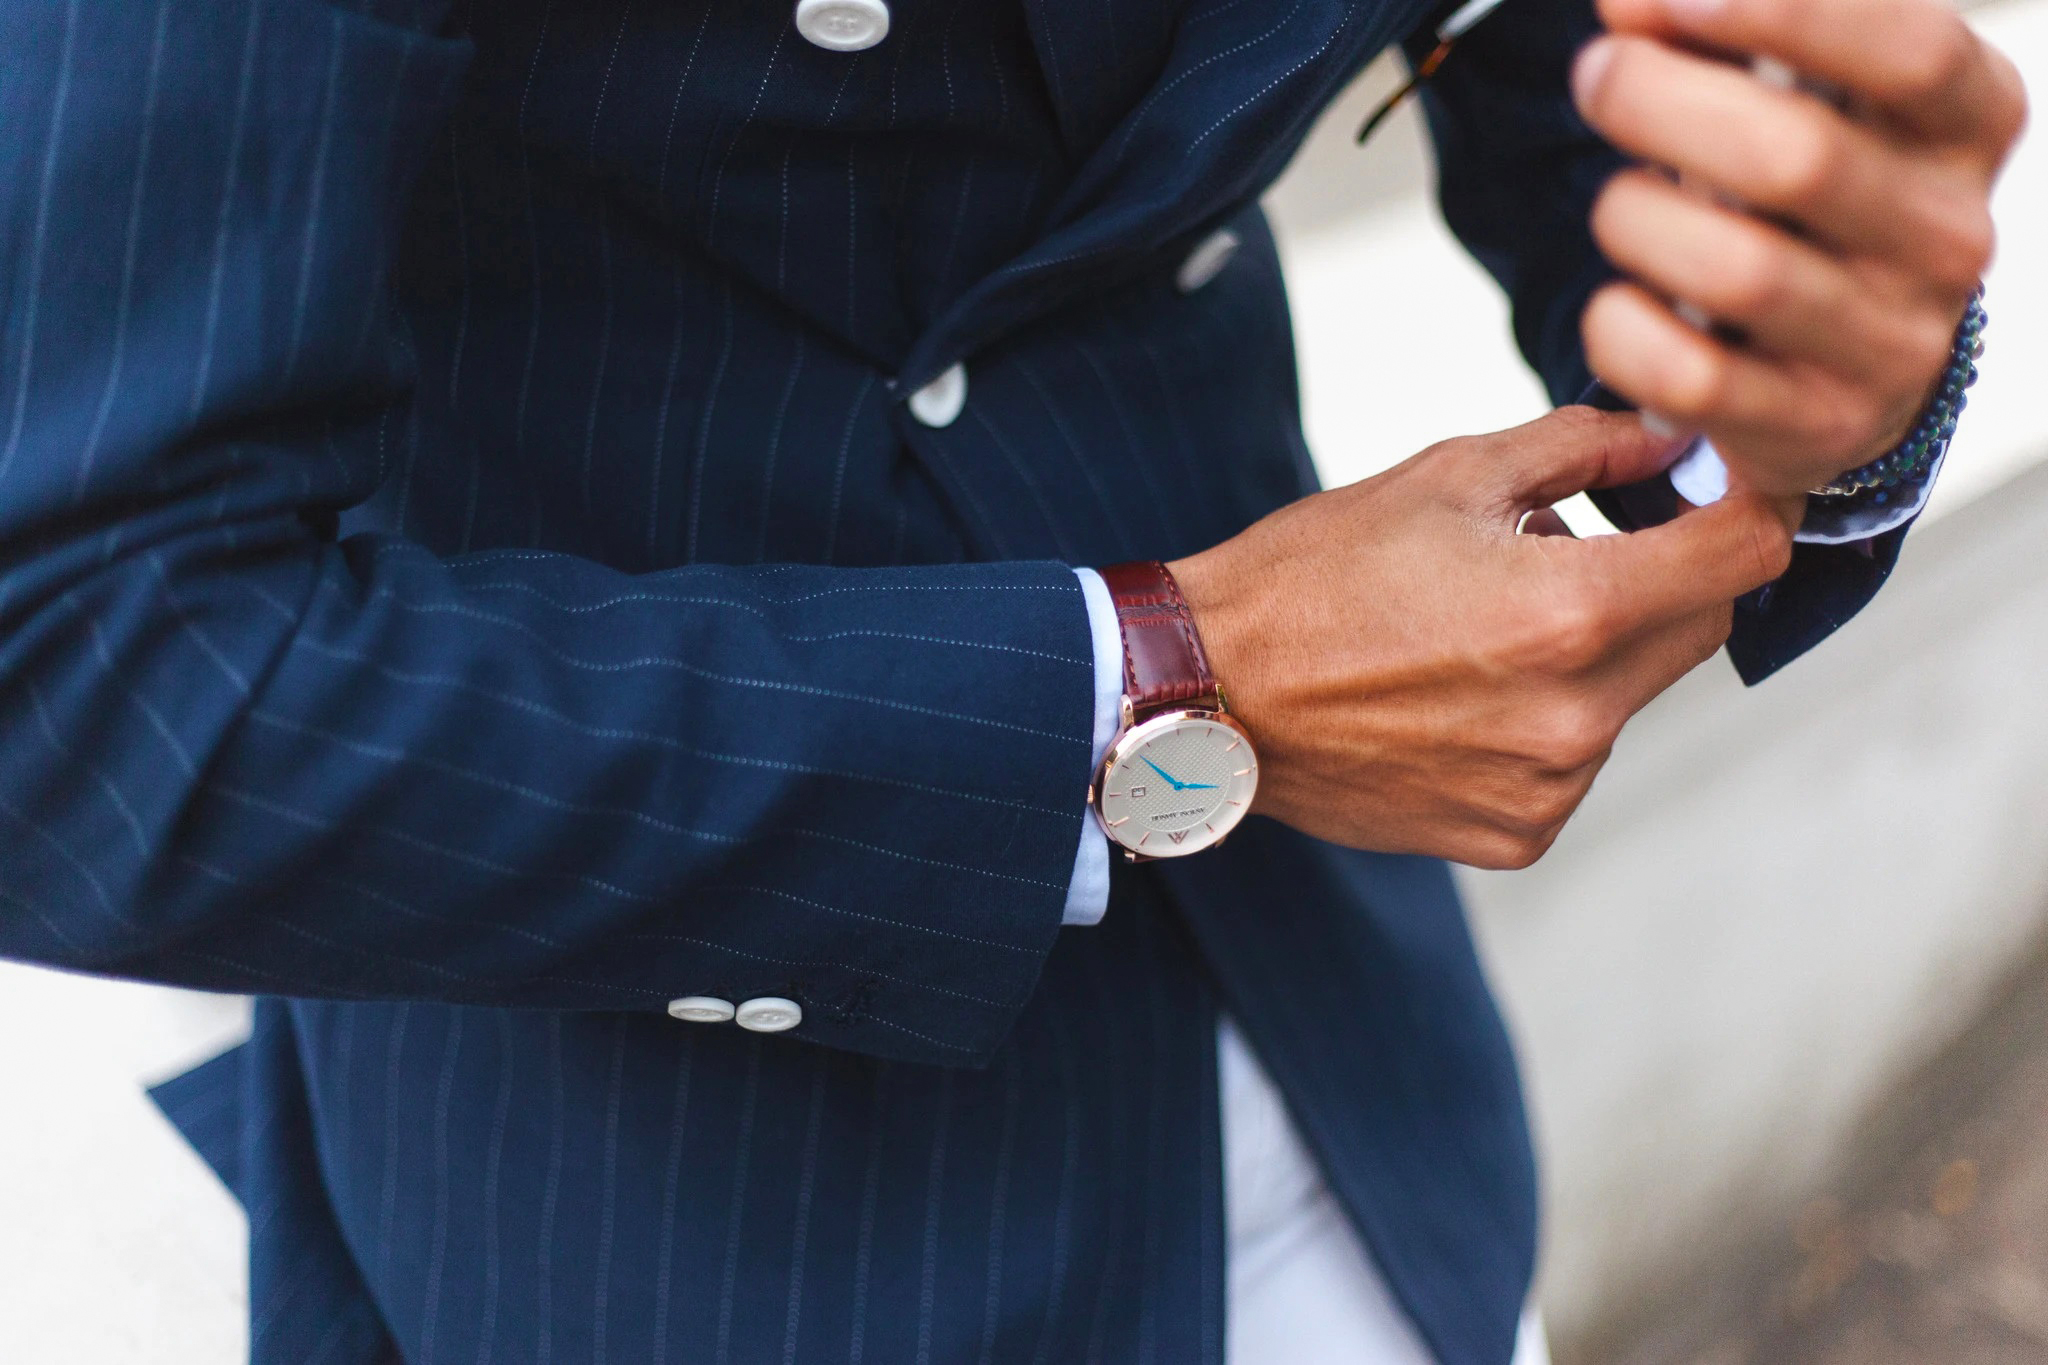 How to match your watch with your suit